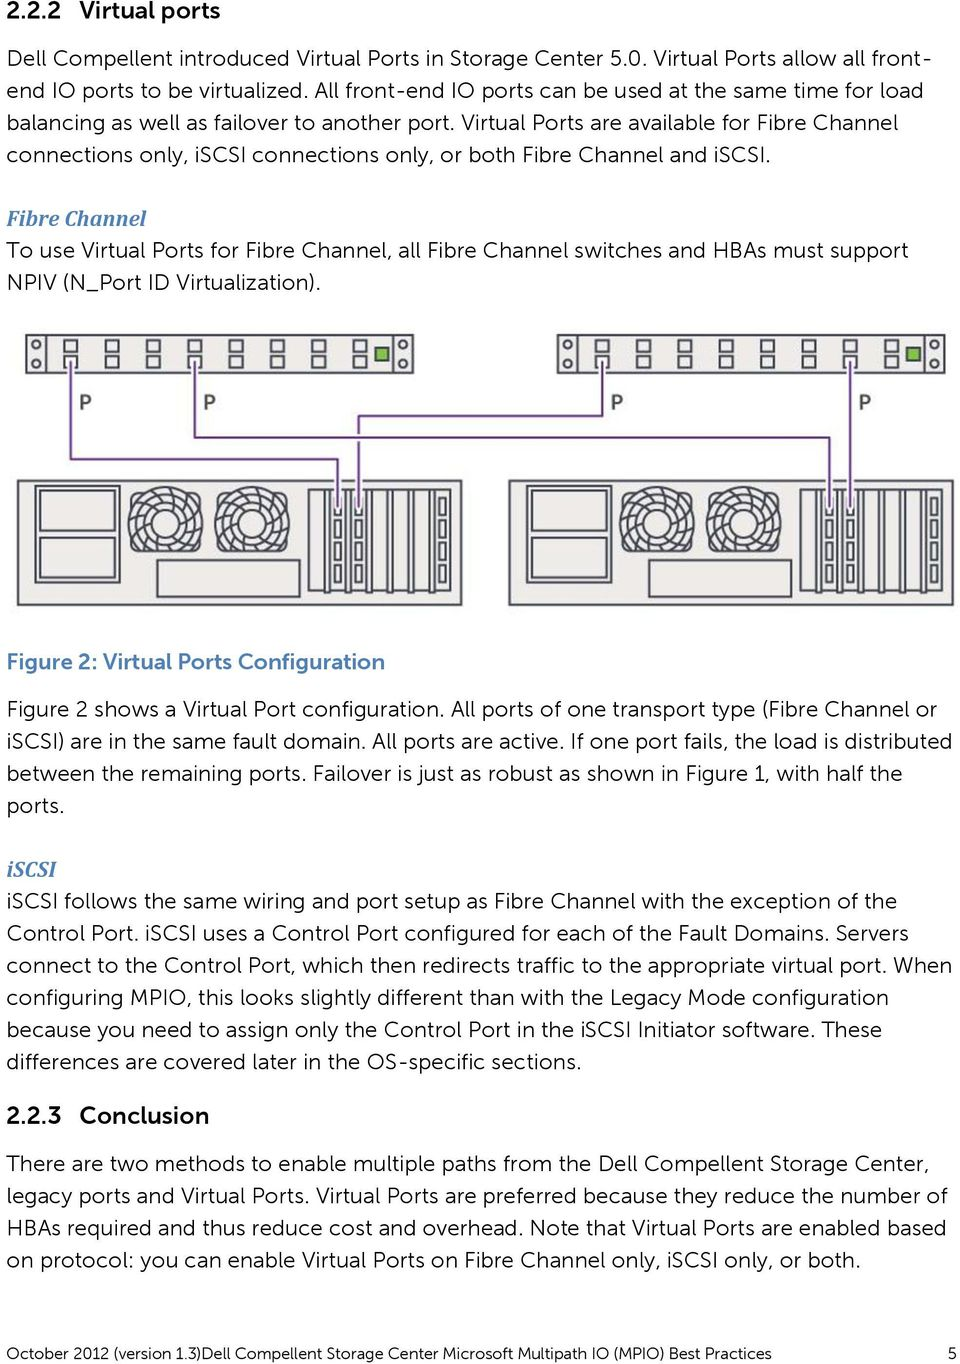 Virtual Ports are available for Fibre Channel connections only, iscsi connections only, or both Fibre Channel and iscsi.